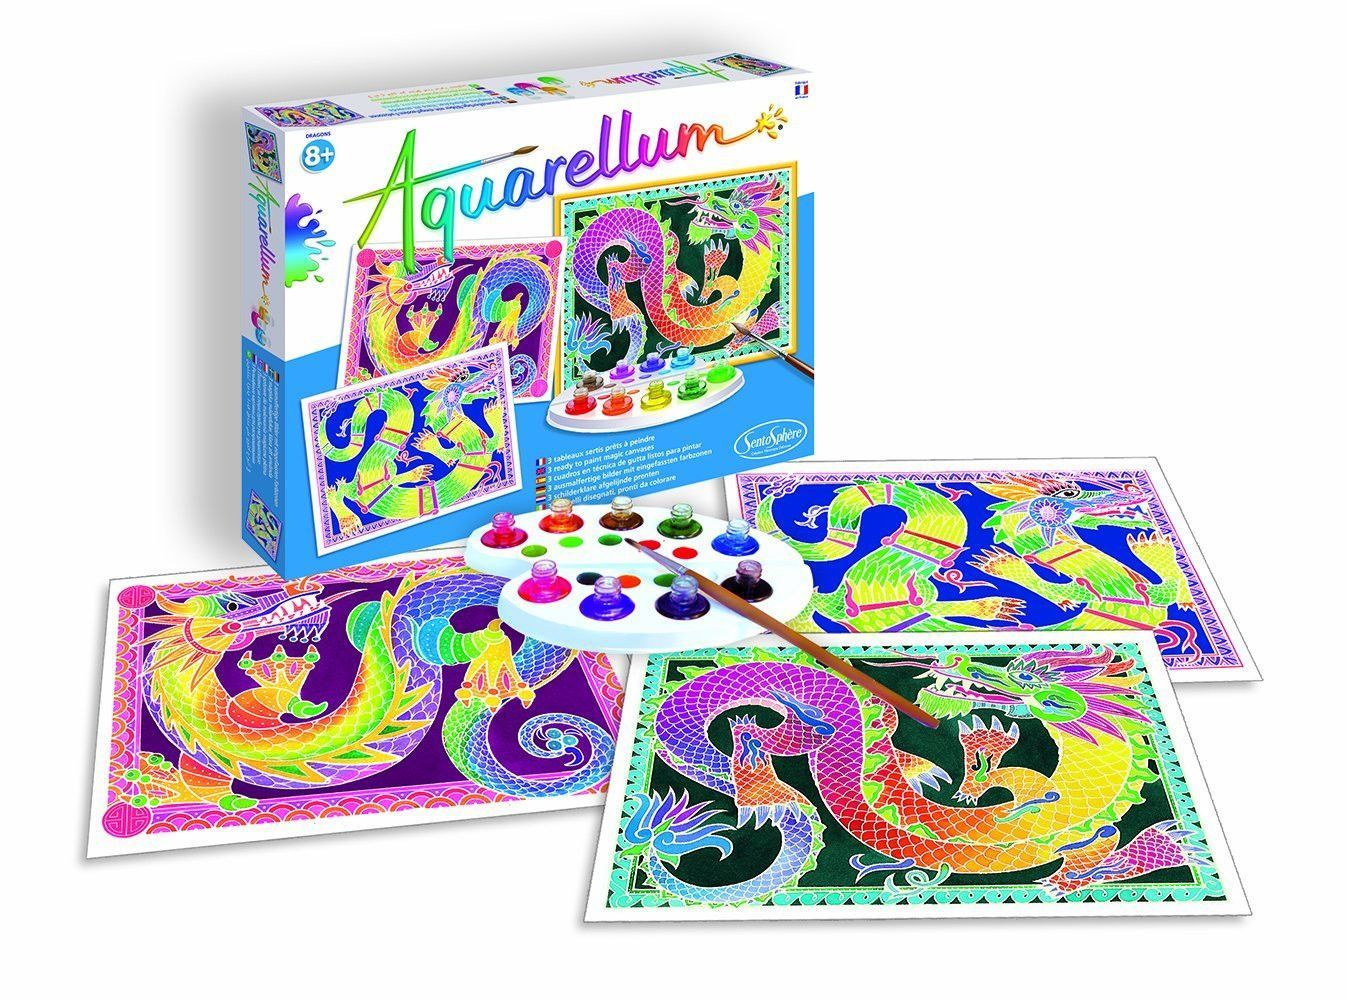 Aquarellum Dragons Painting Kit Dragon Crafts Arts And Crafts